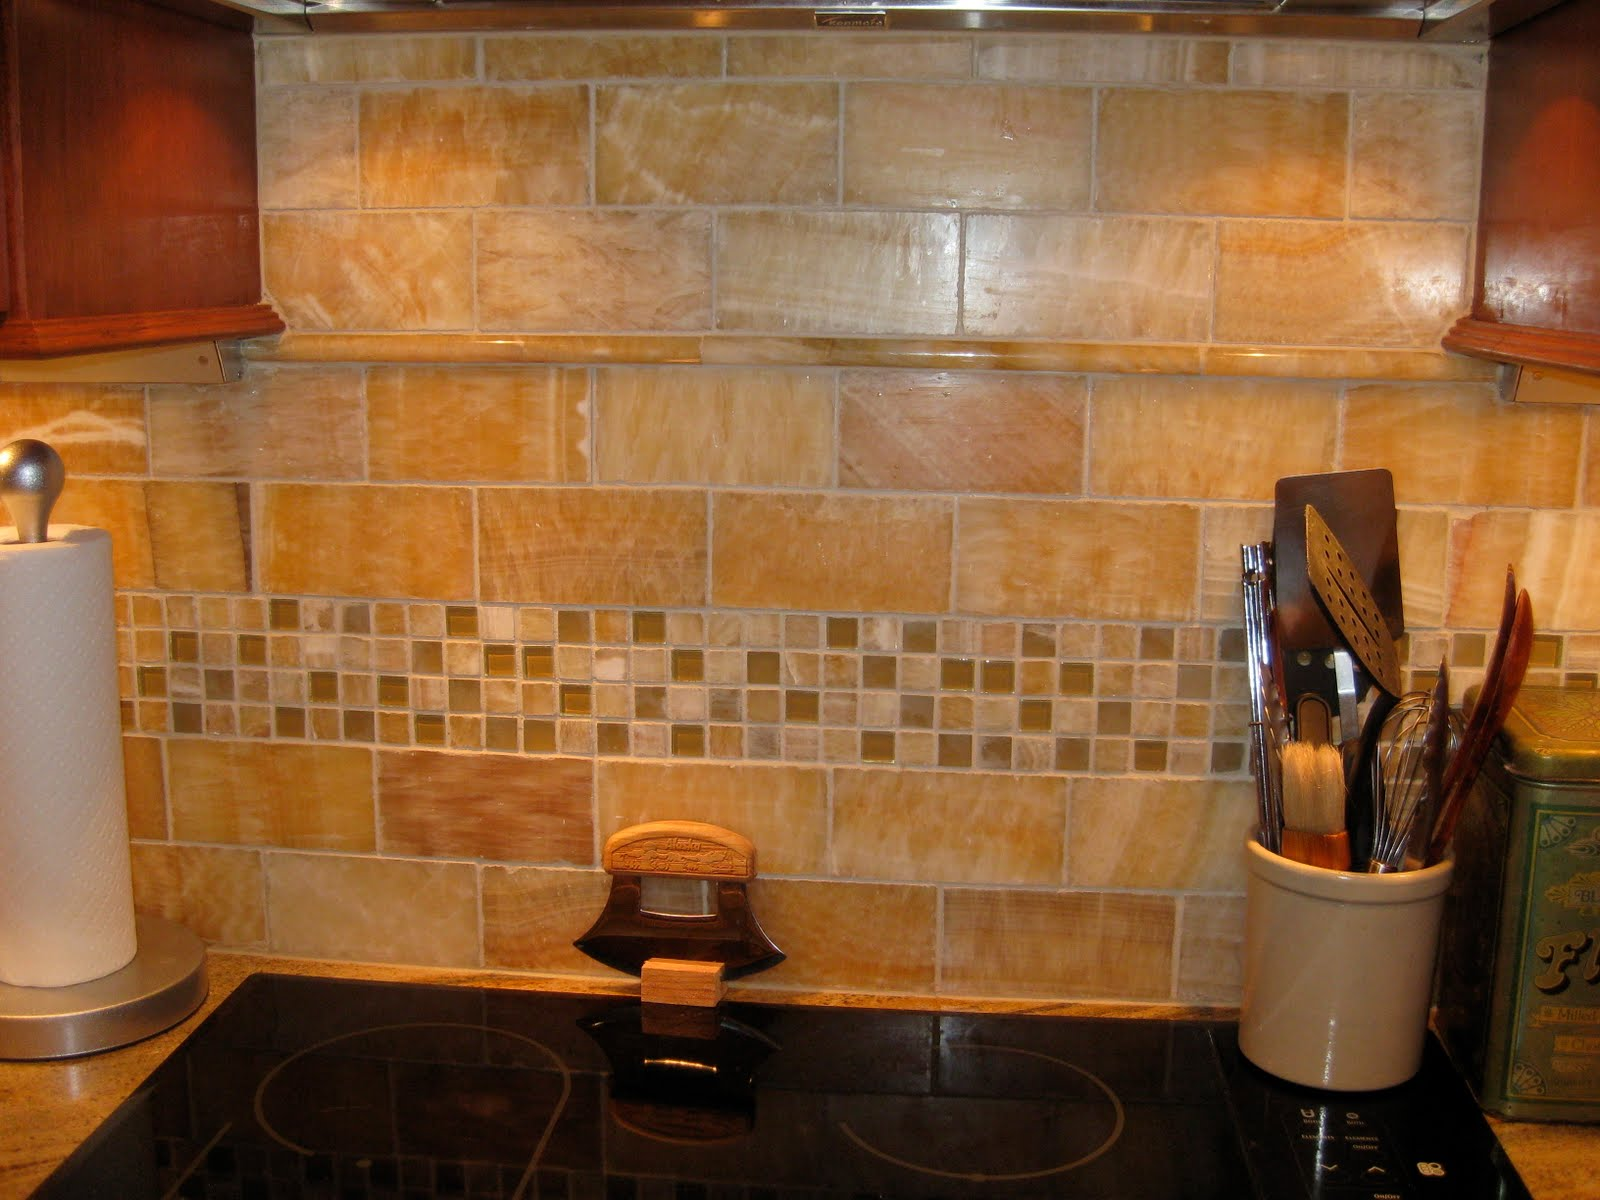 Kitchen with Tumbled Tile Backsplash